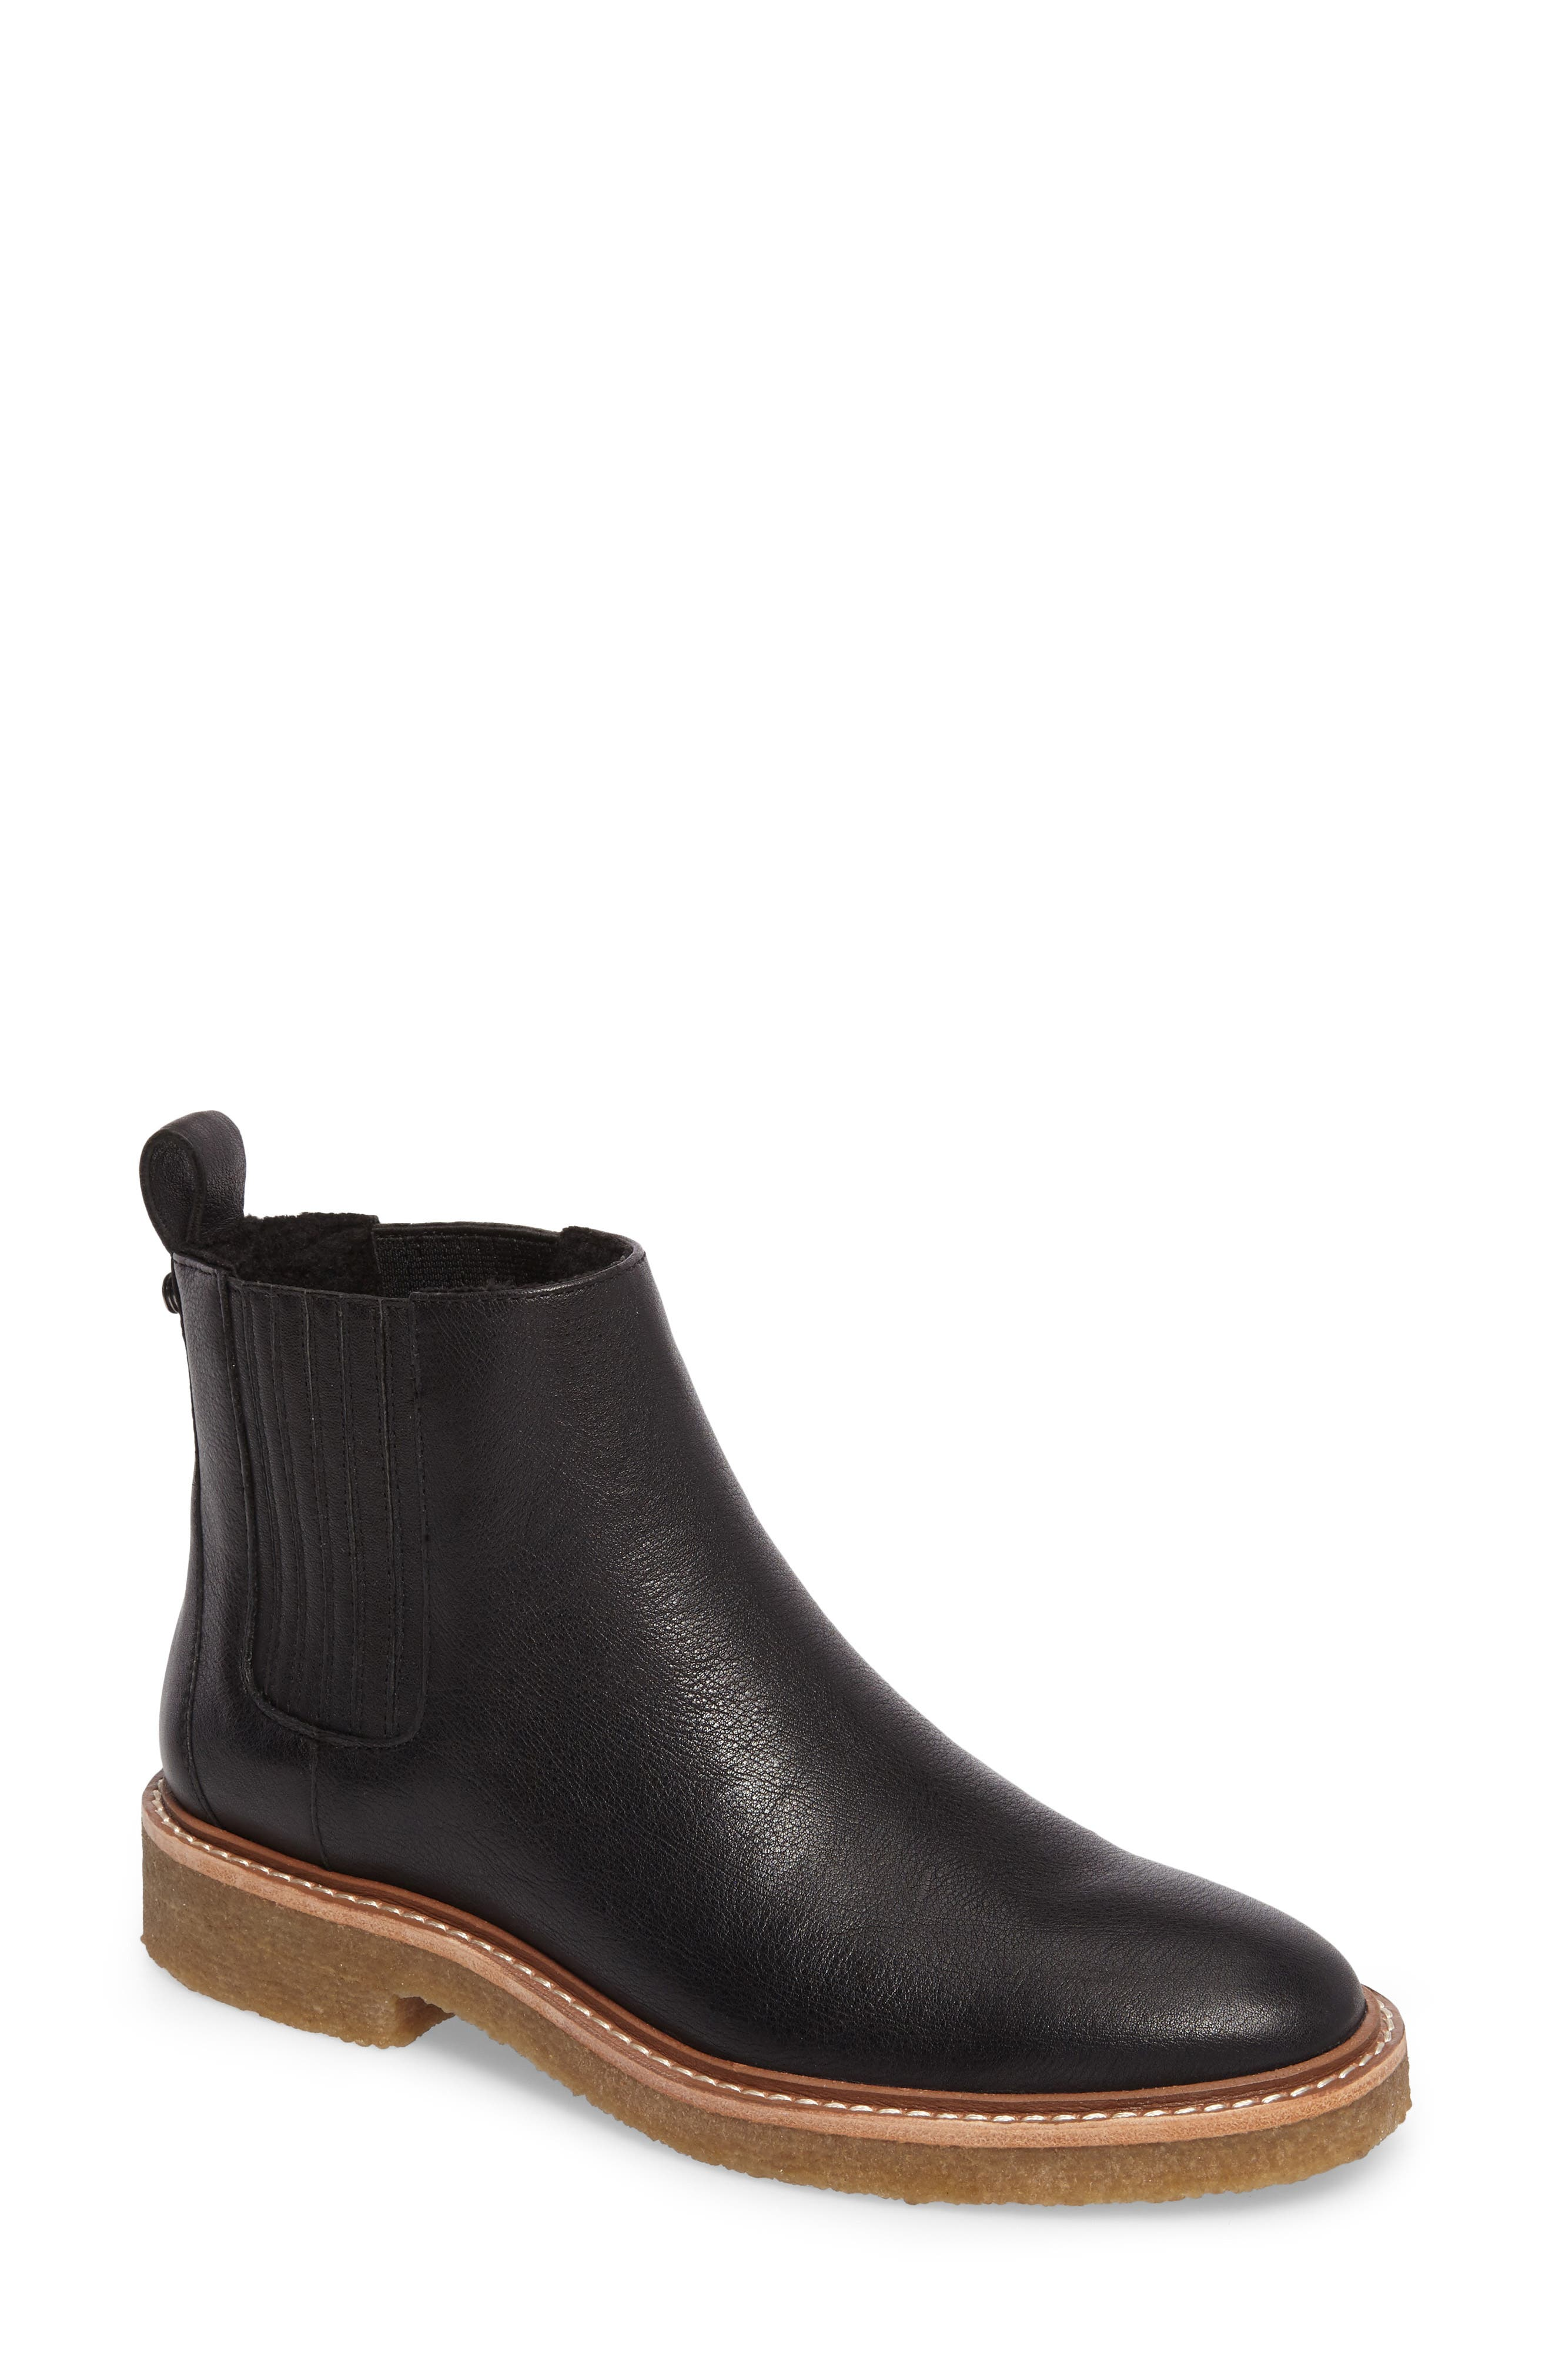 Botkier Chelsea Faux Shearling Lined Boot, Black